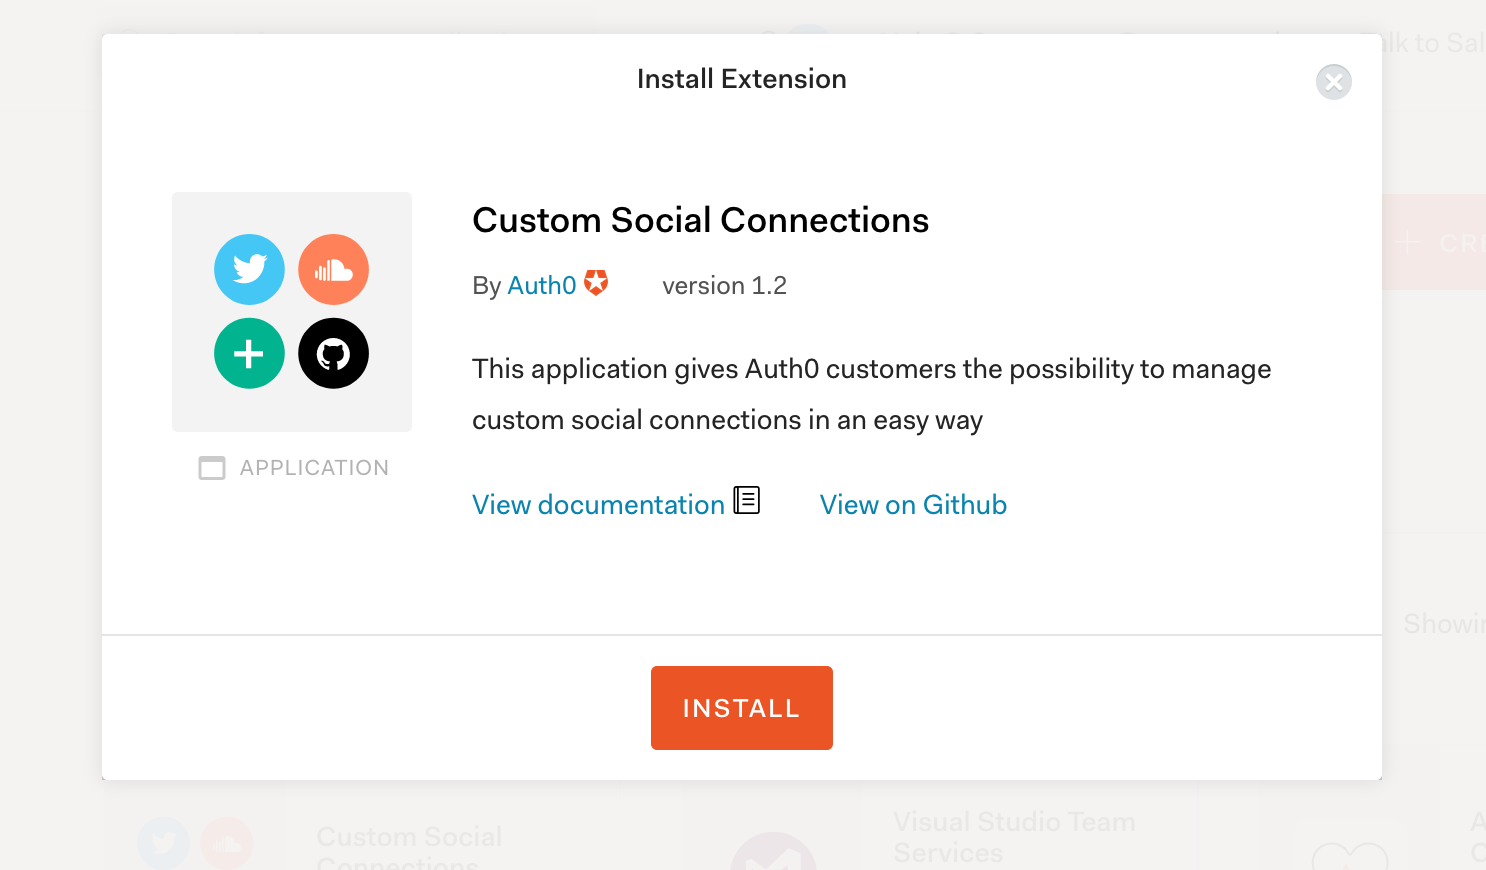 Installing a custom social connection